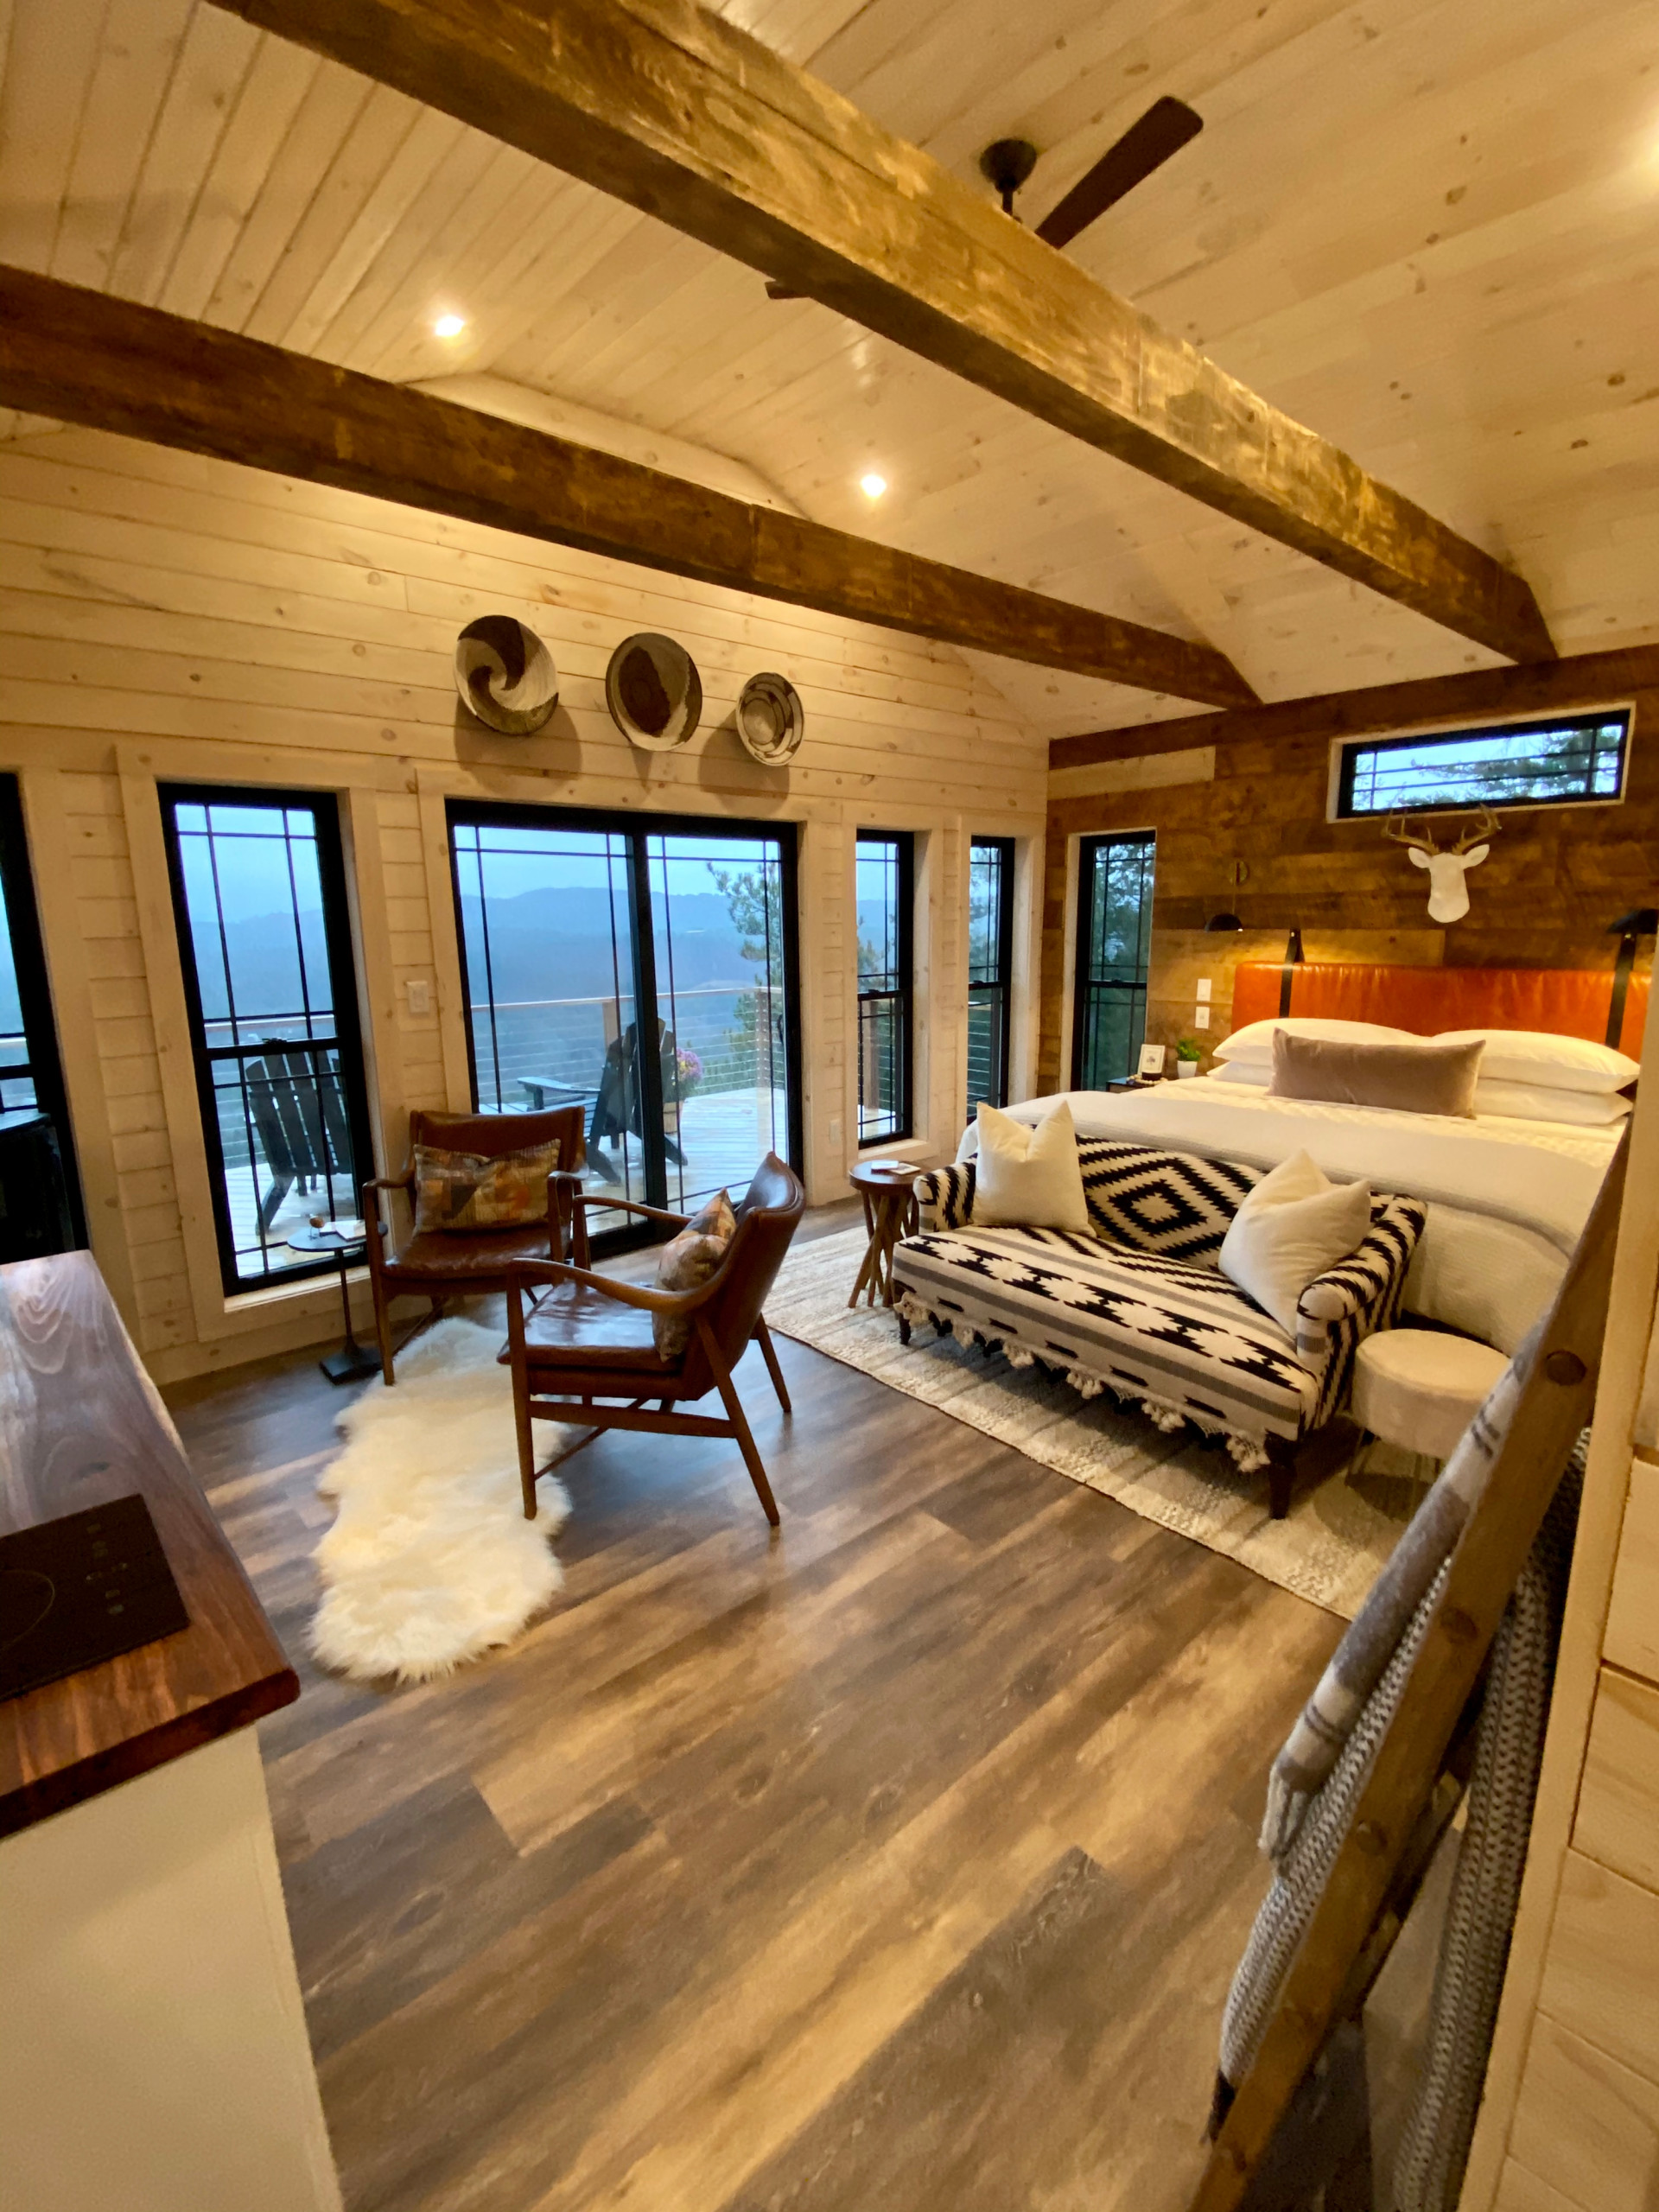 The Cliff Cabin